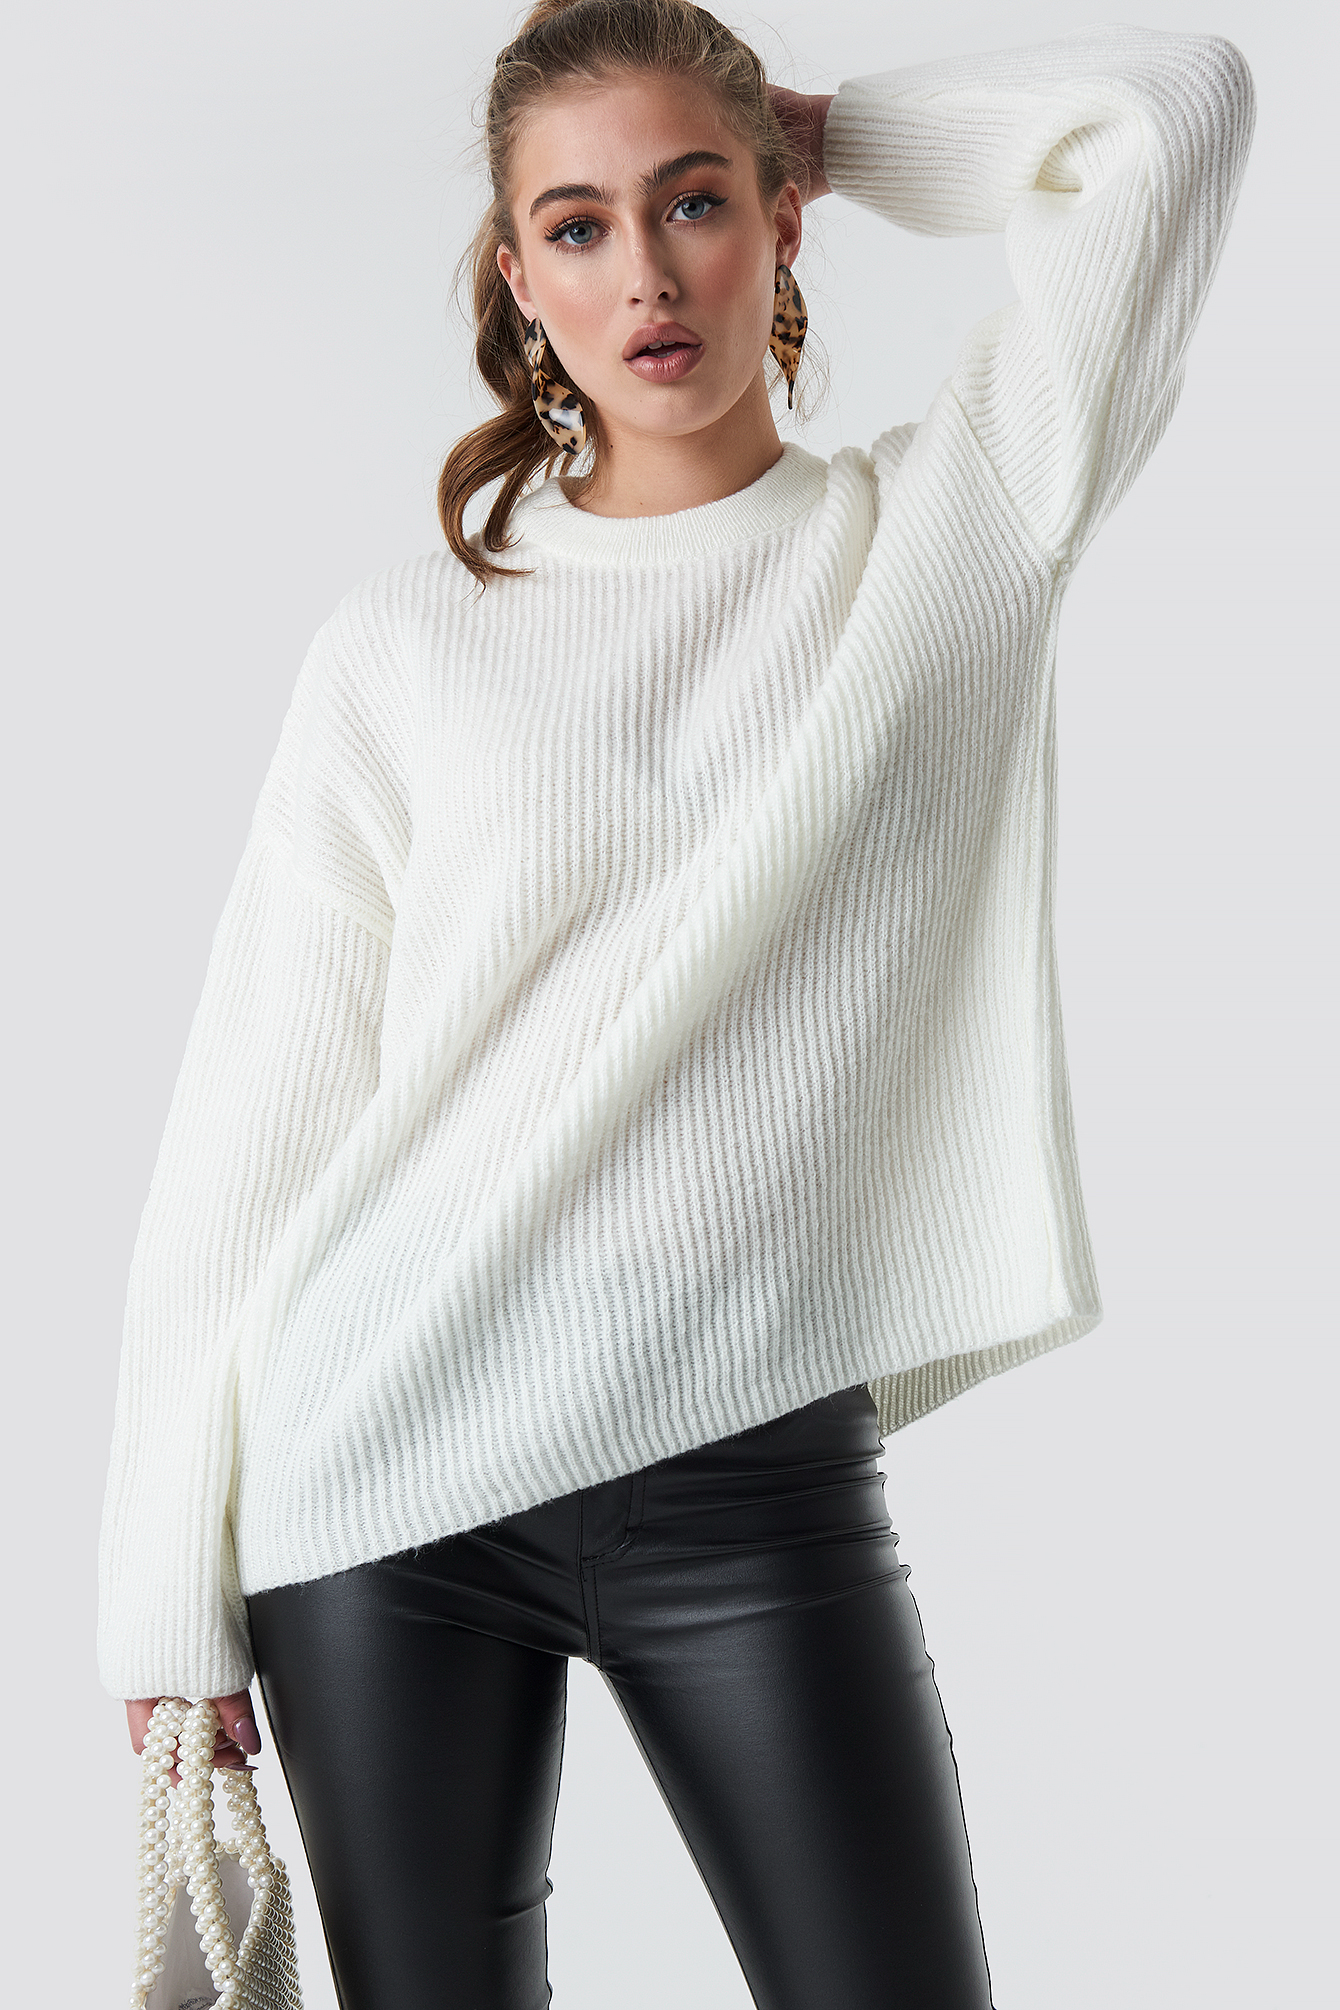 Katarina Juric Knitted Sweater NA-KD.COM